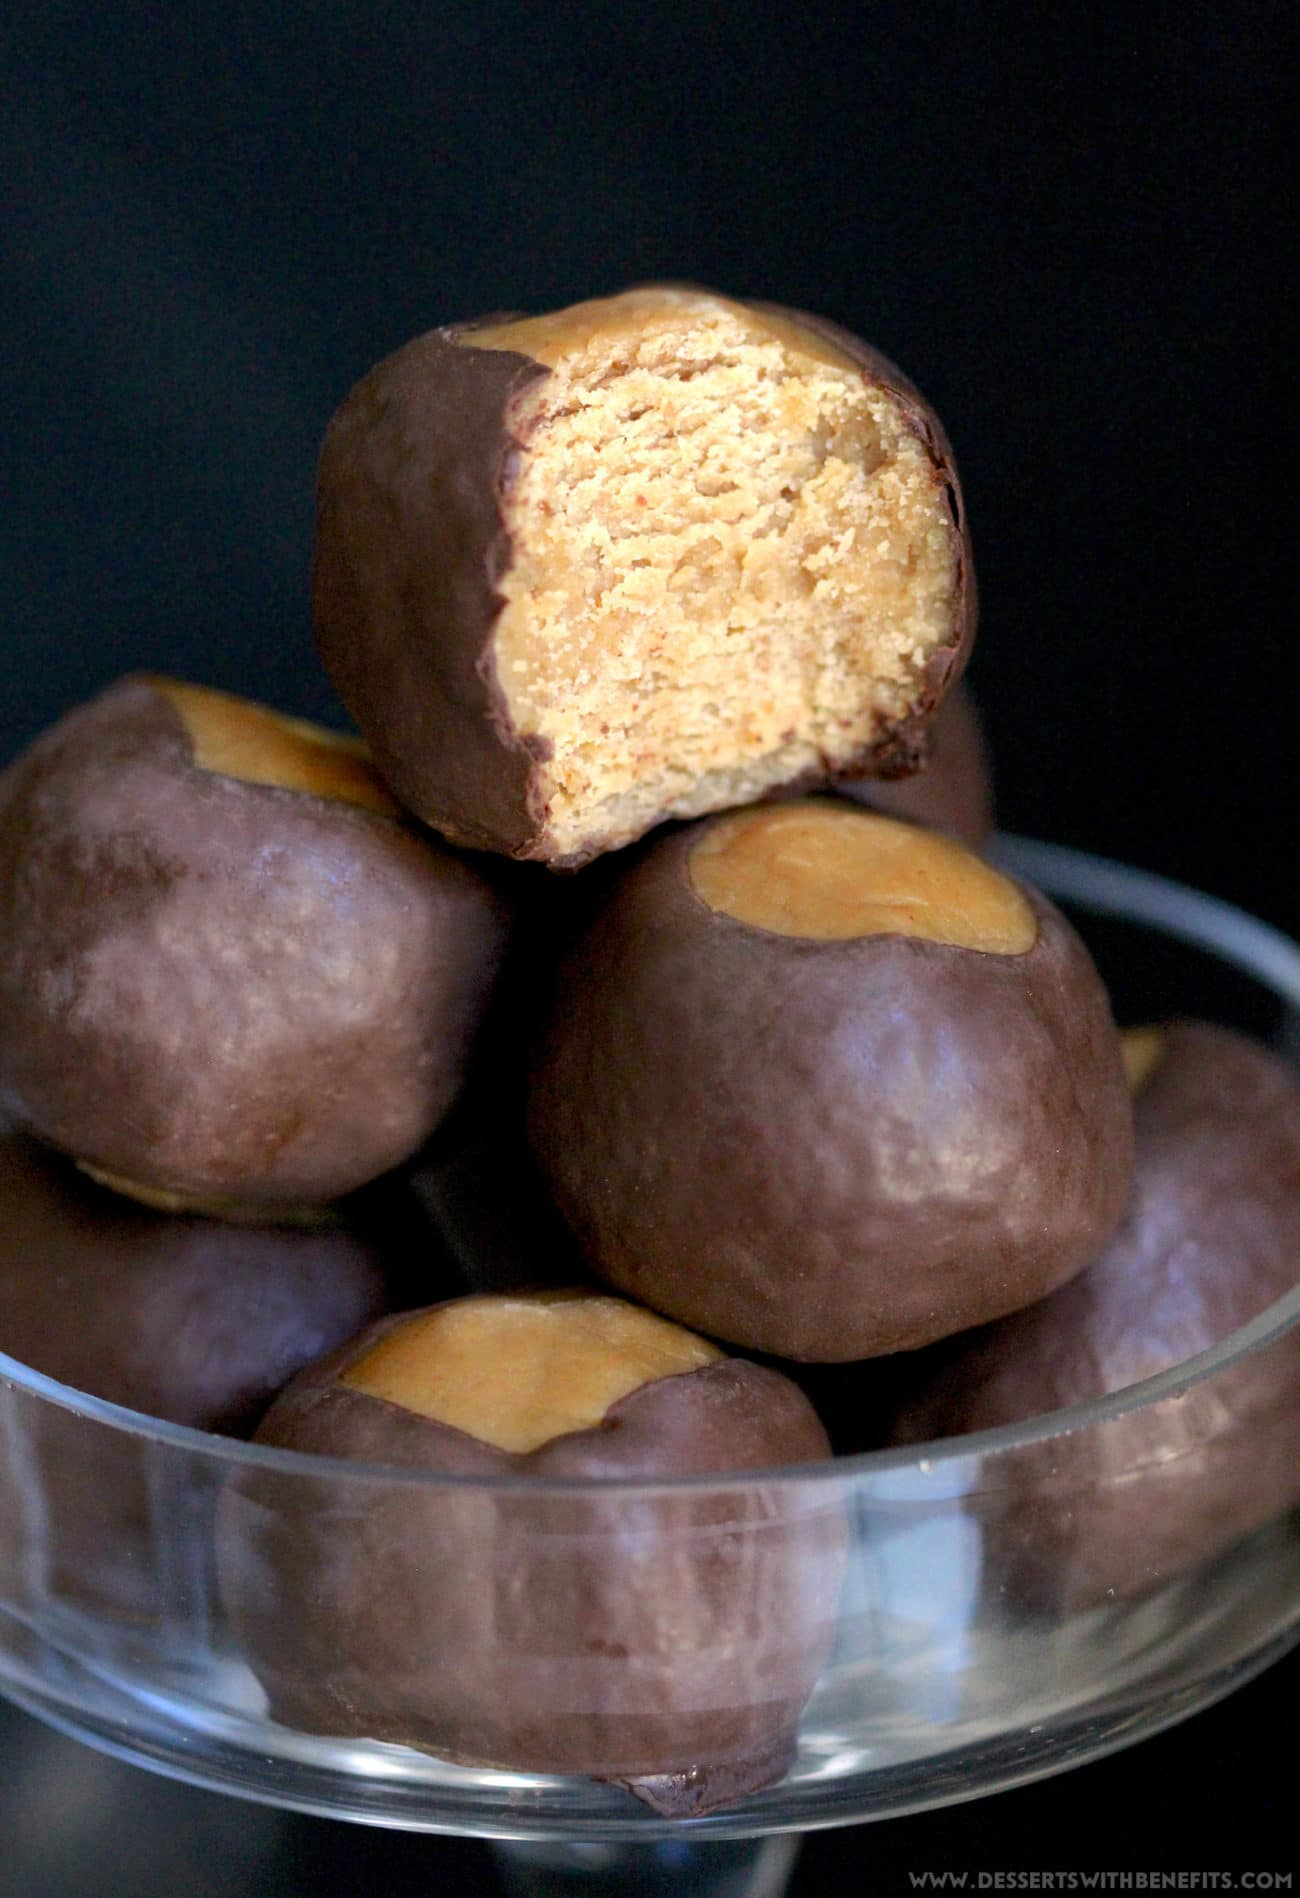 These Healthy Buckeye Balls are sweet and fudgy, peanut buttery orbs of magic surrounded by a layer of rich and decadent dark chocolate. It's hard to believe they're refined sugar free, low carb, high protein, and gluten free! Healthy Dessert Recipes at Desserts with Benefits